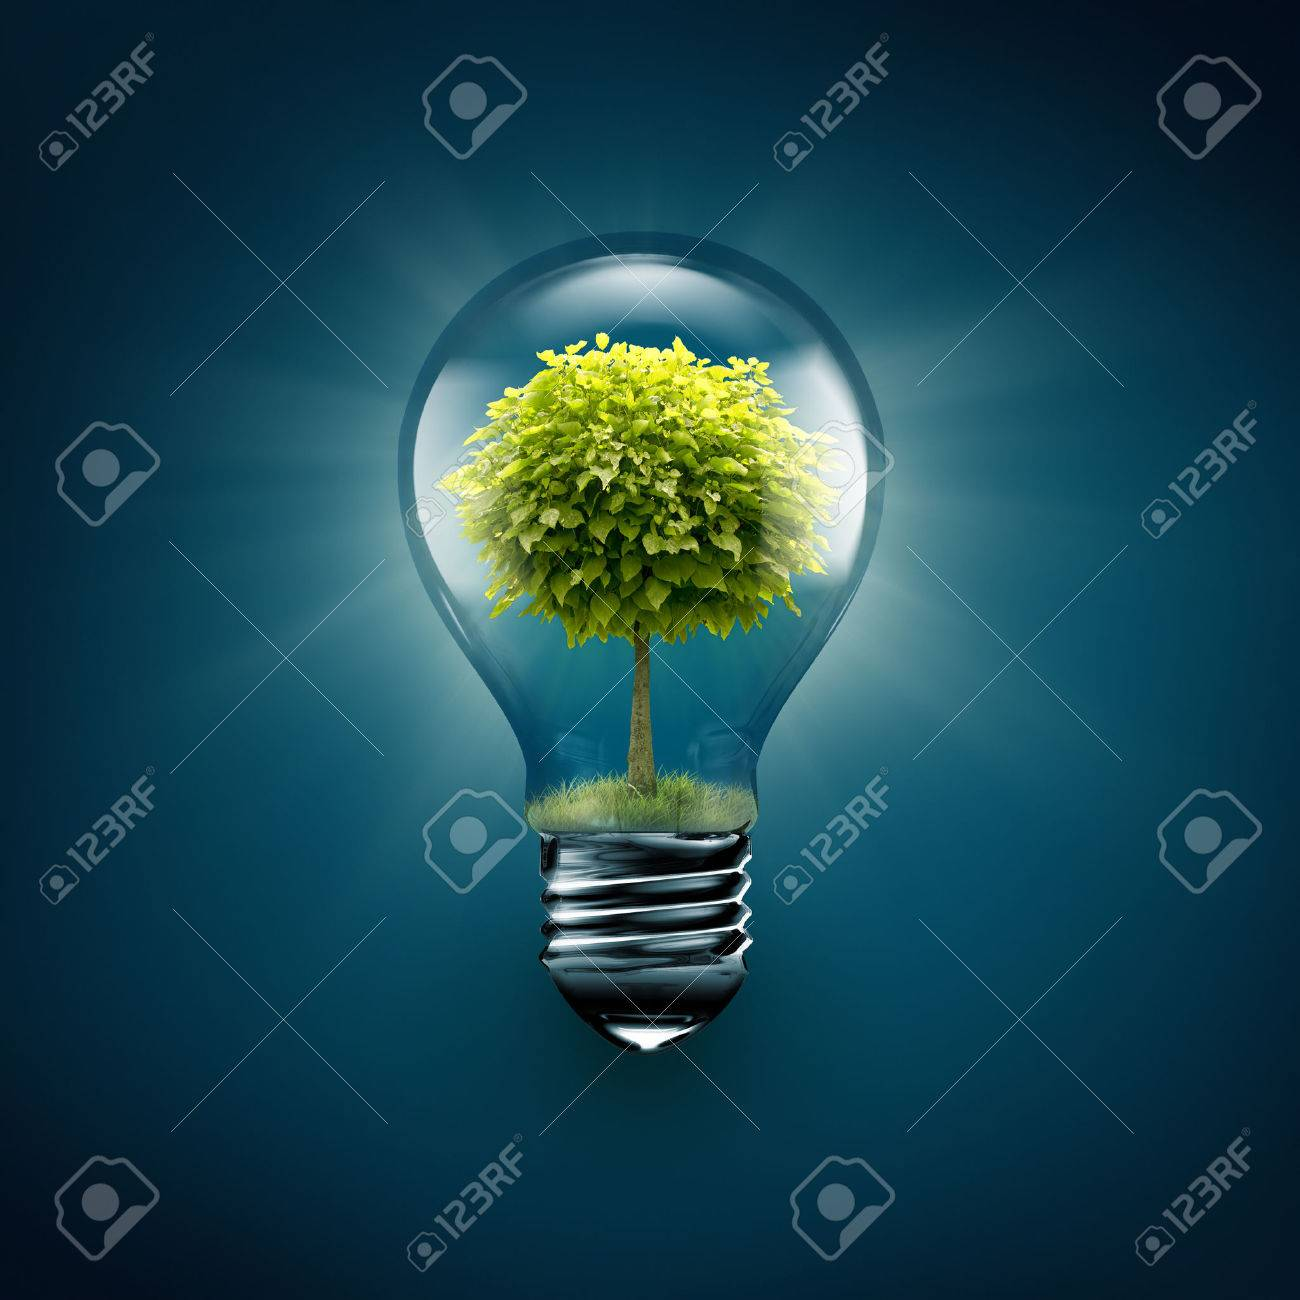 light bulb with tree inside on a blue background - 52591928